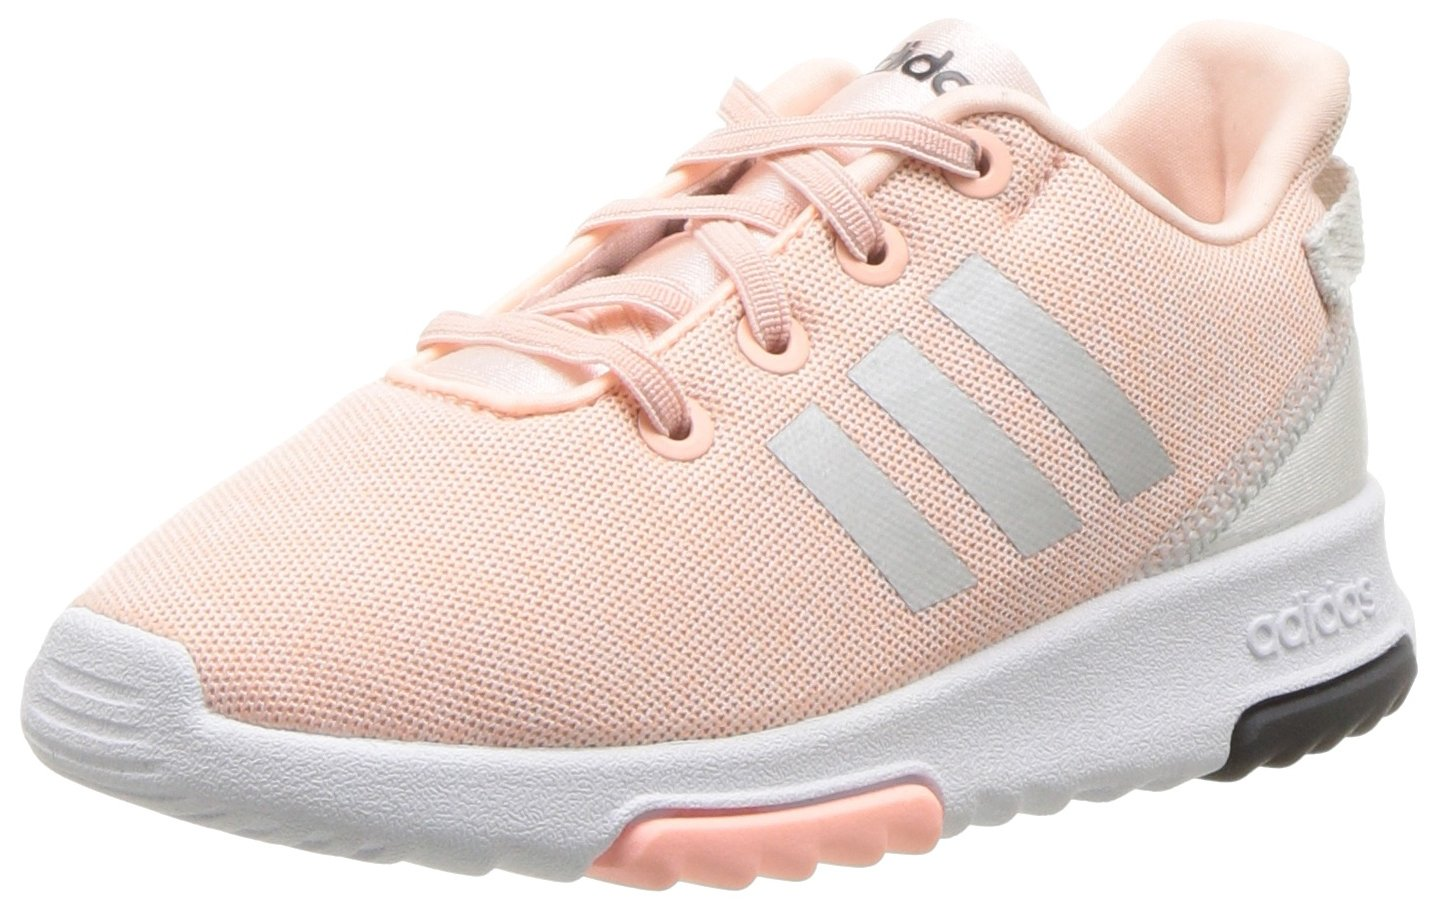 adidas Kids CF Racer TR Running Shoe, Haze Coral/Metallic Silver/White, 5K M US Toddler by adidas (Image #1)